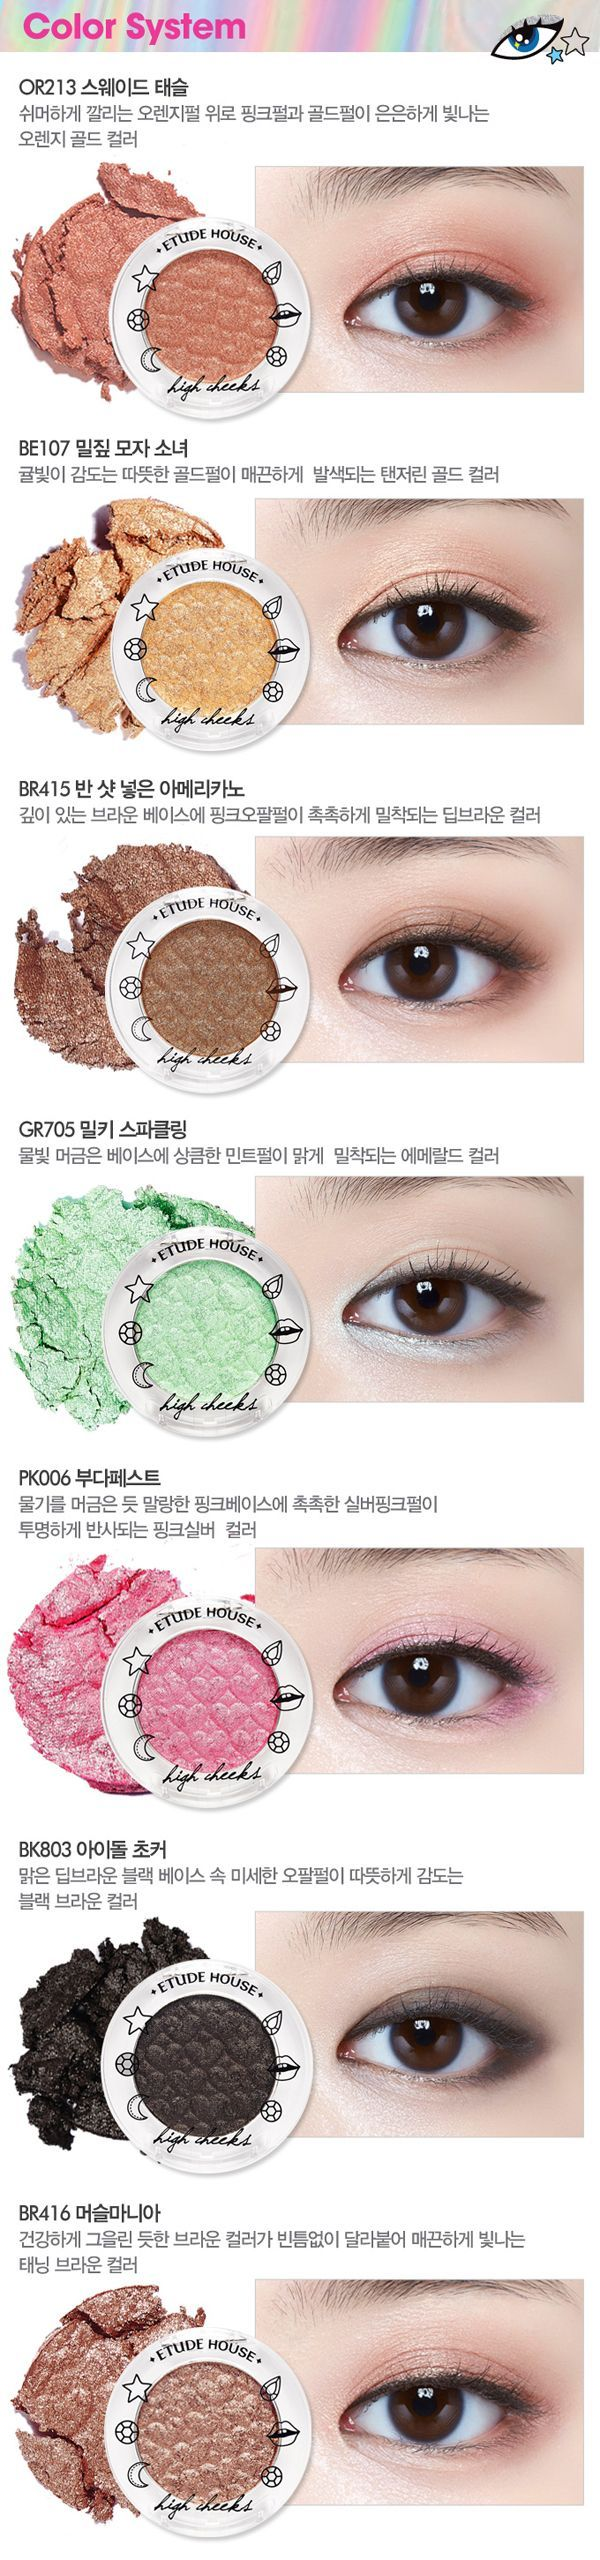 etude house BLING ME PRISM LOOK AT MY EYES swatch